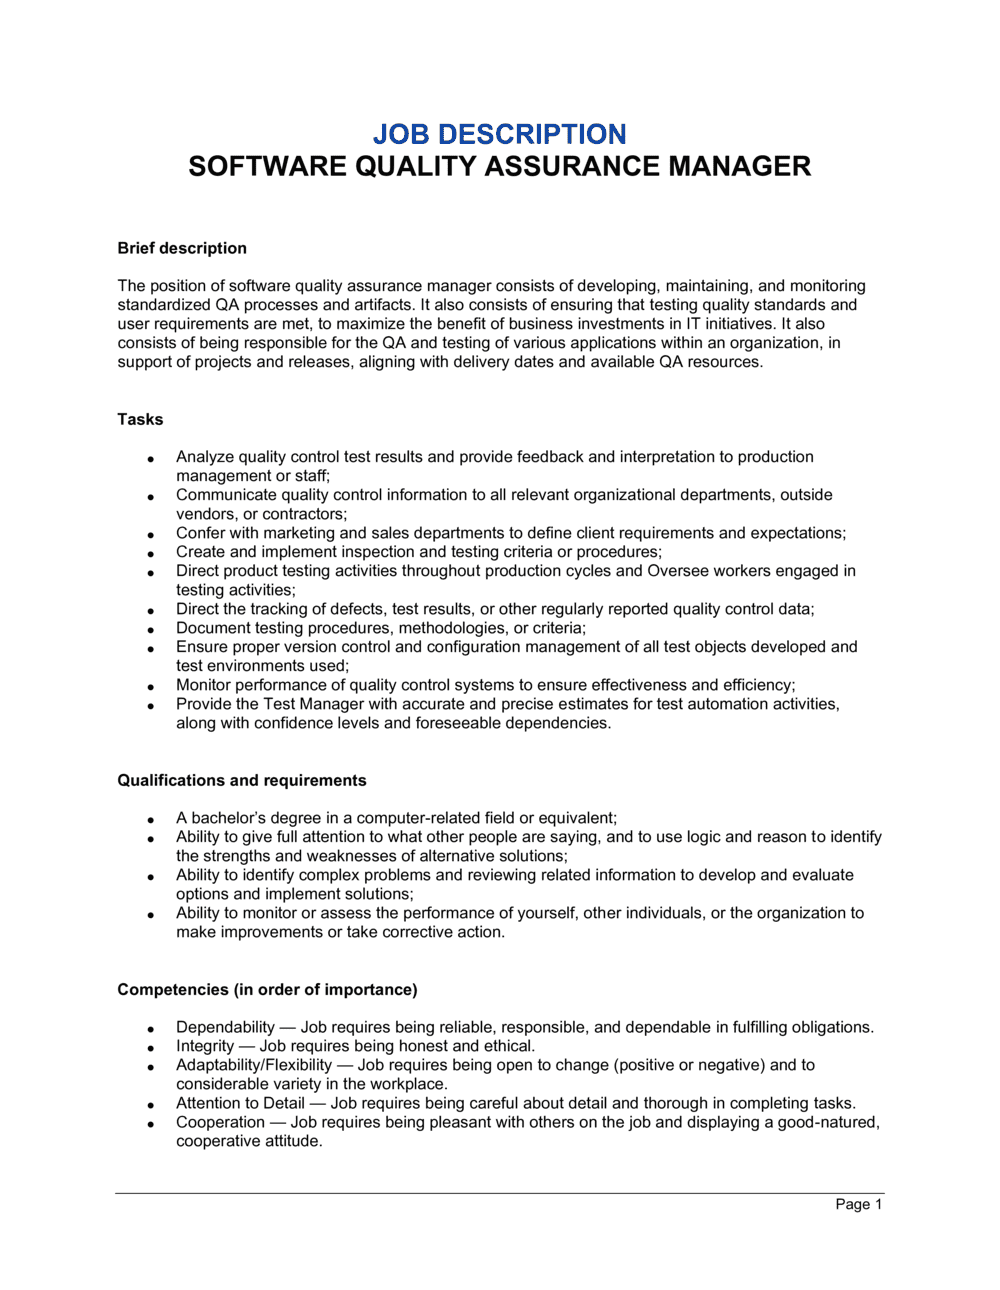 Business-in-a-Box's Software Quality Assurance Manager Job Description Template